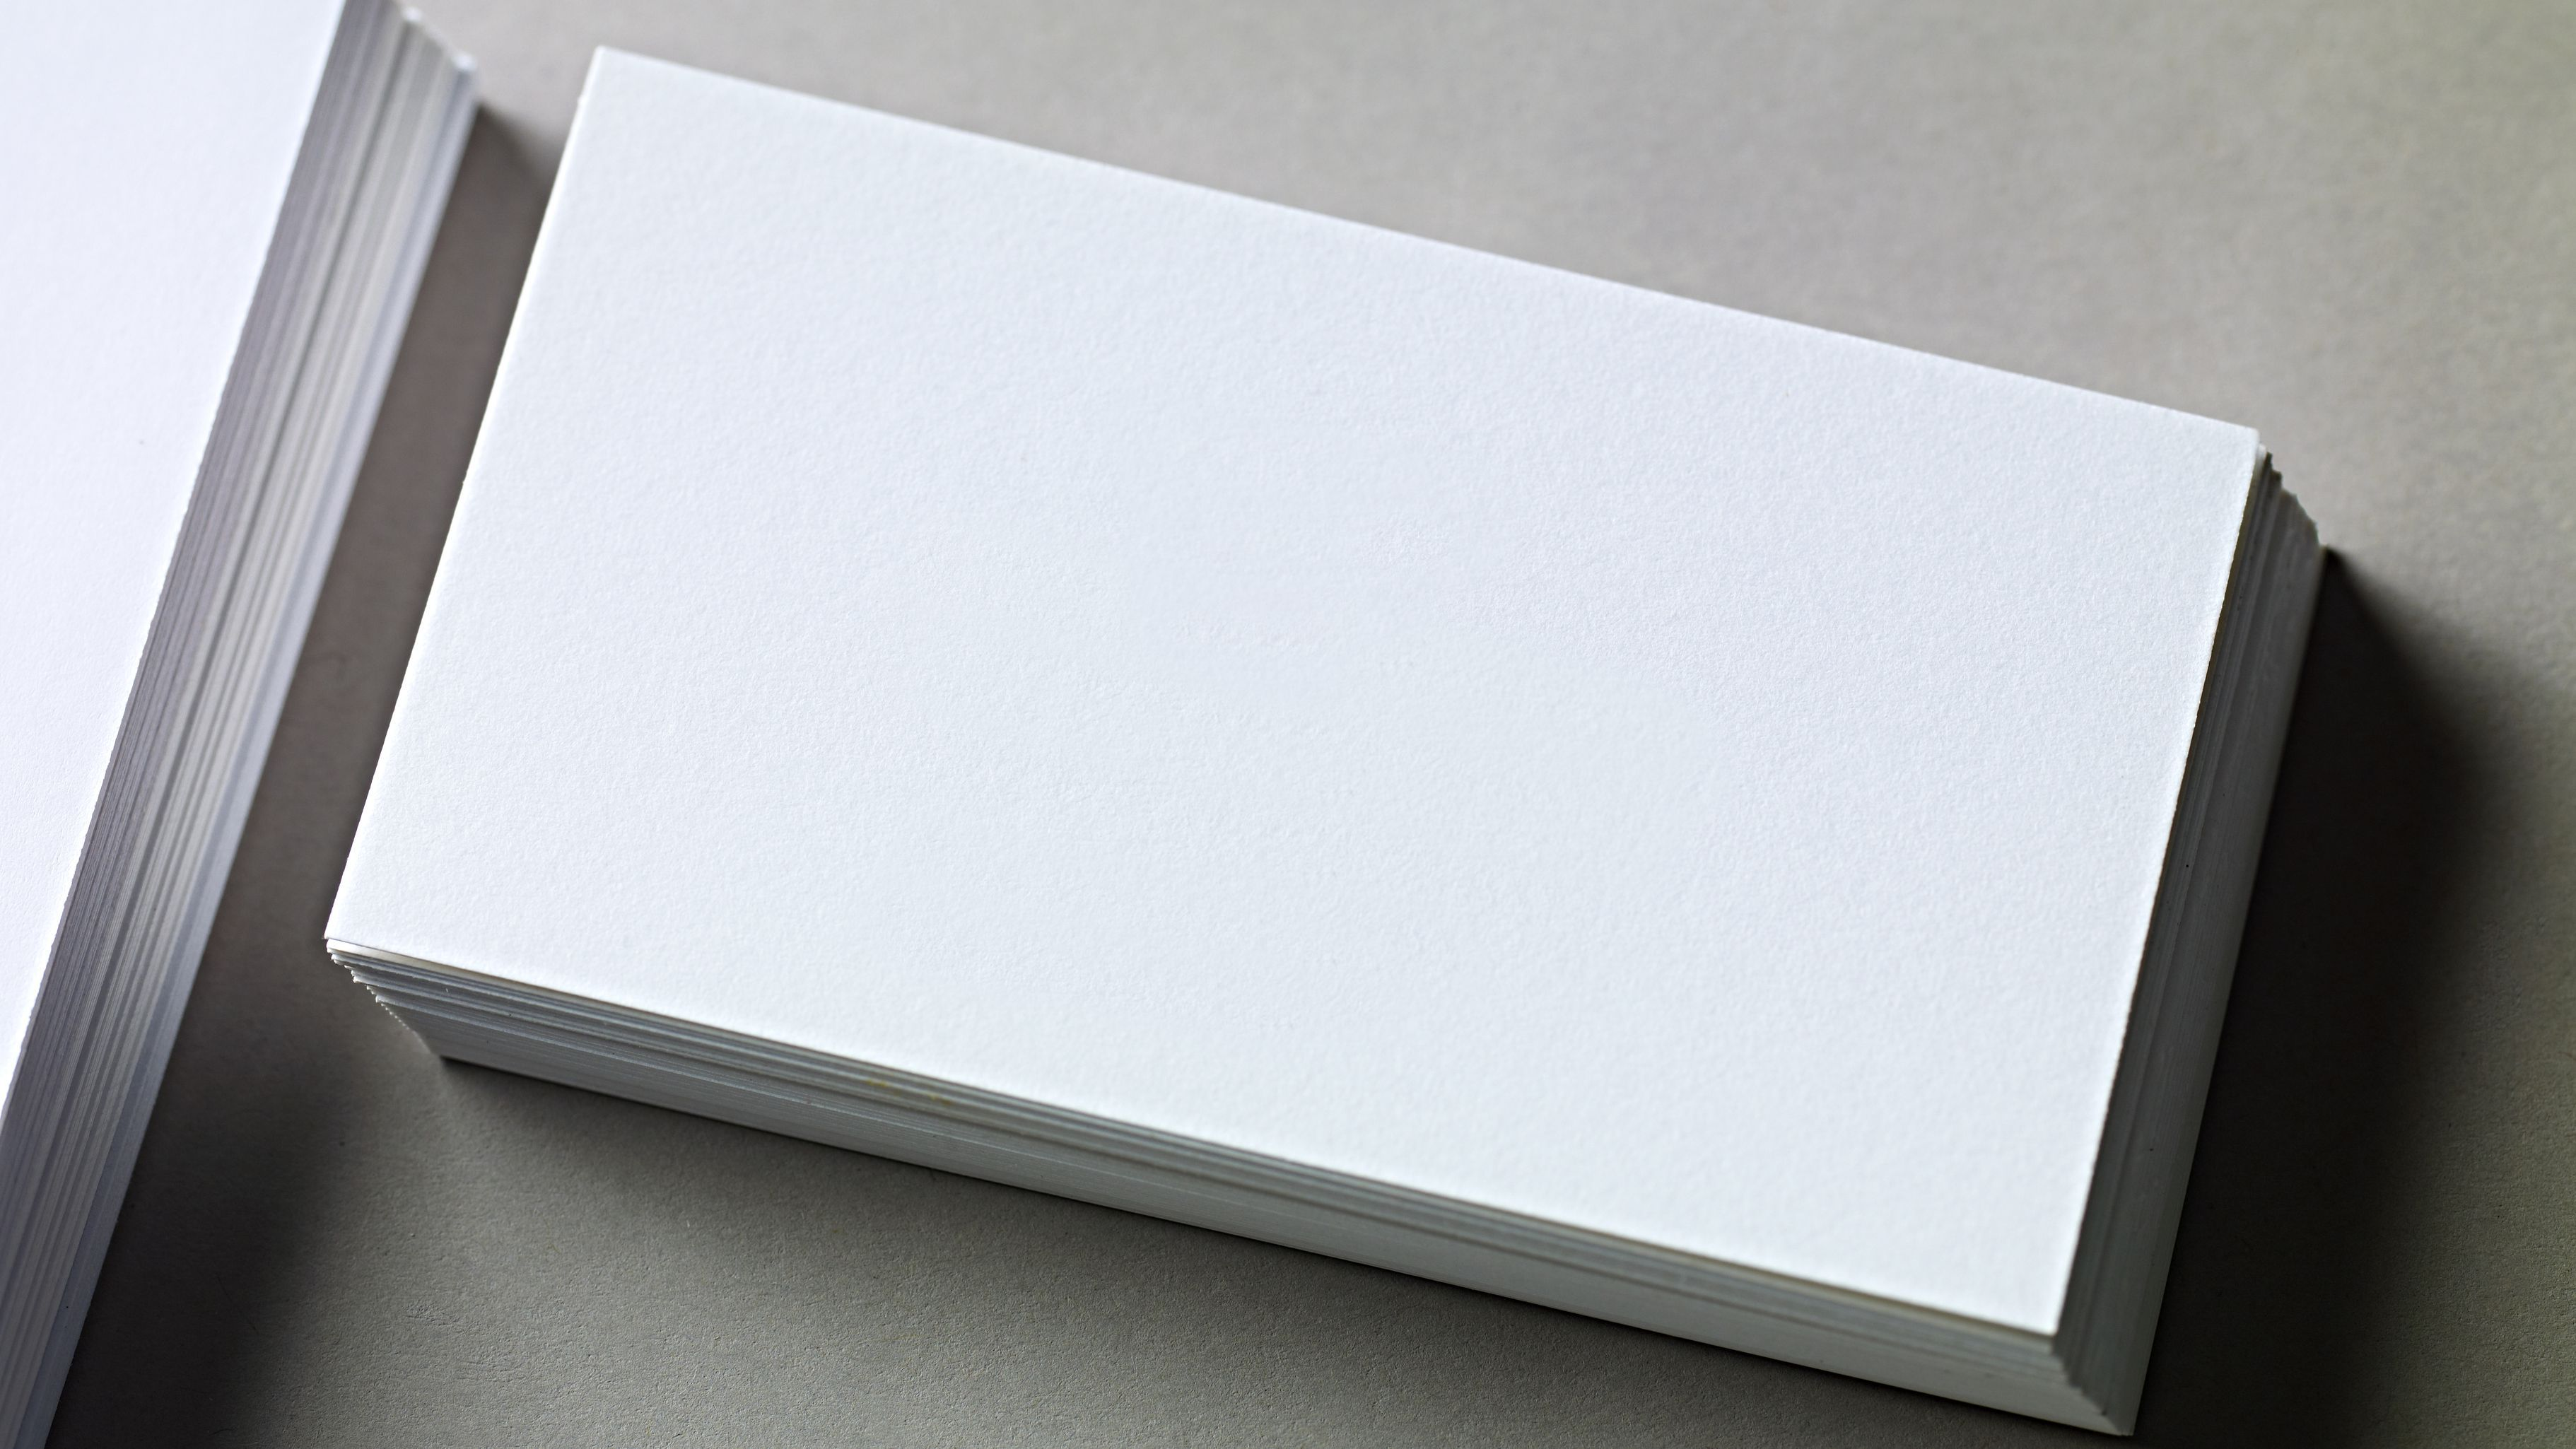 004 Wondrou Free Blank Busines Card Template Photoshop Highest Clarity  Download PsdFull